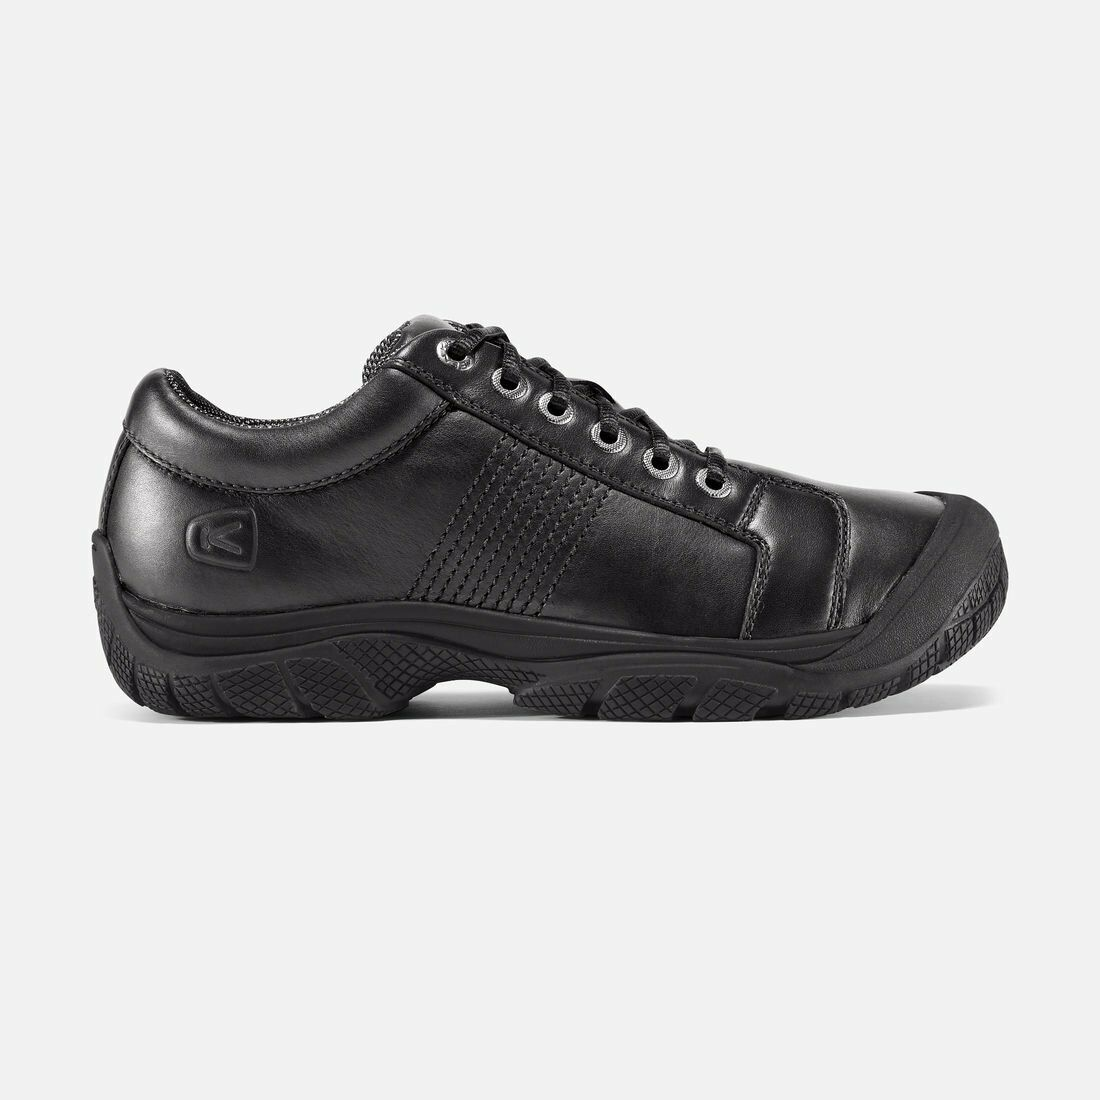 Mens KEEN Utility PTC Soft-Toe Black Oxford  12 D